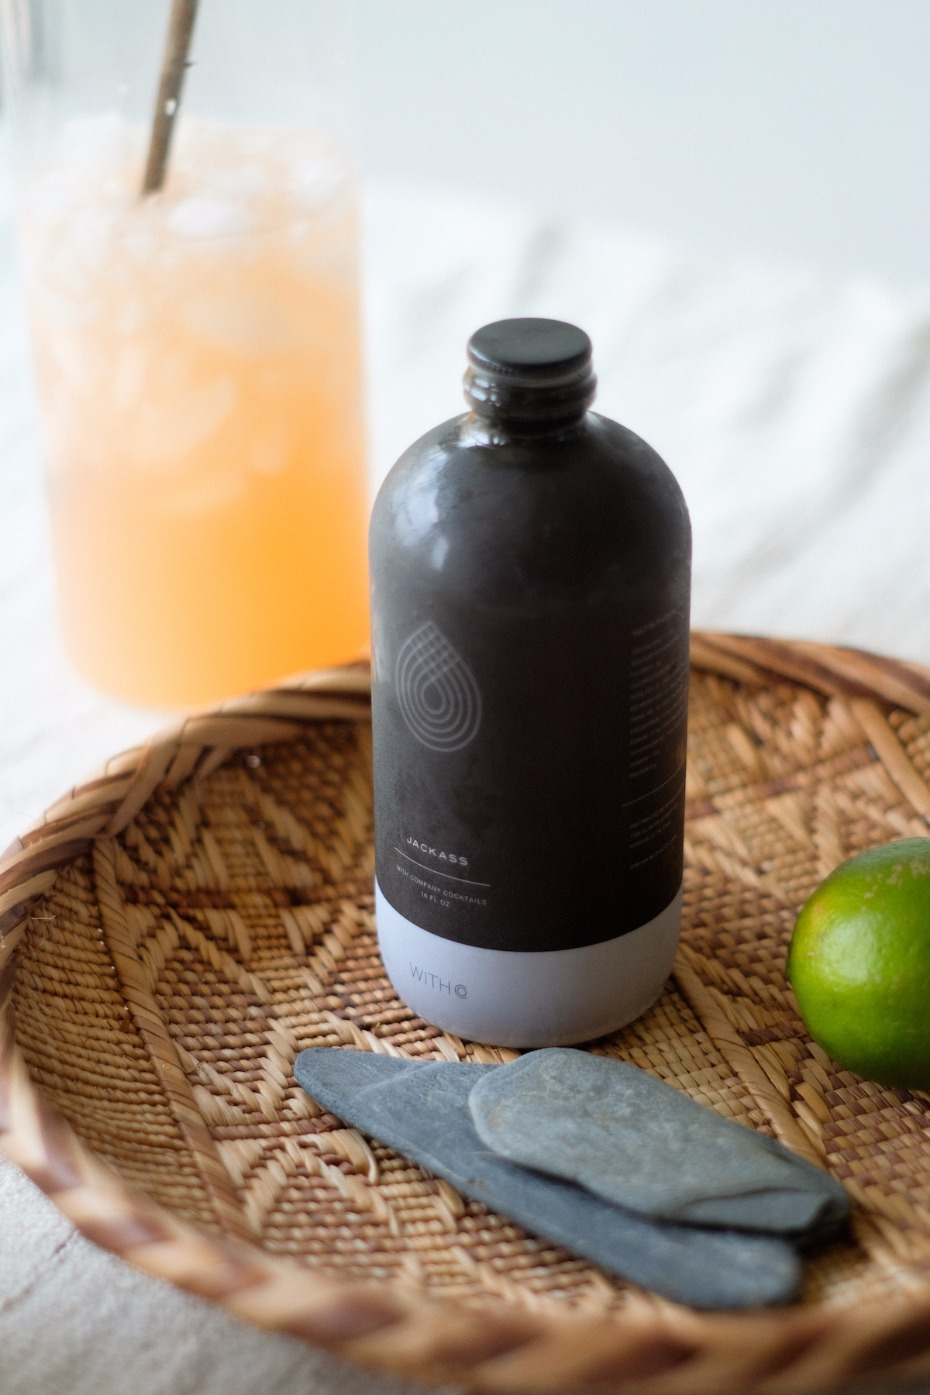 WithCo creates bottled cocktails using only fresh, real ingredients and no preservatives.